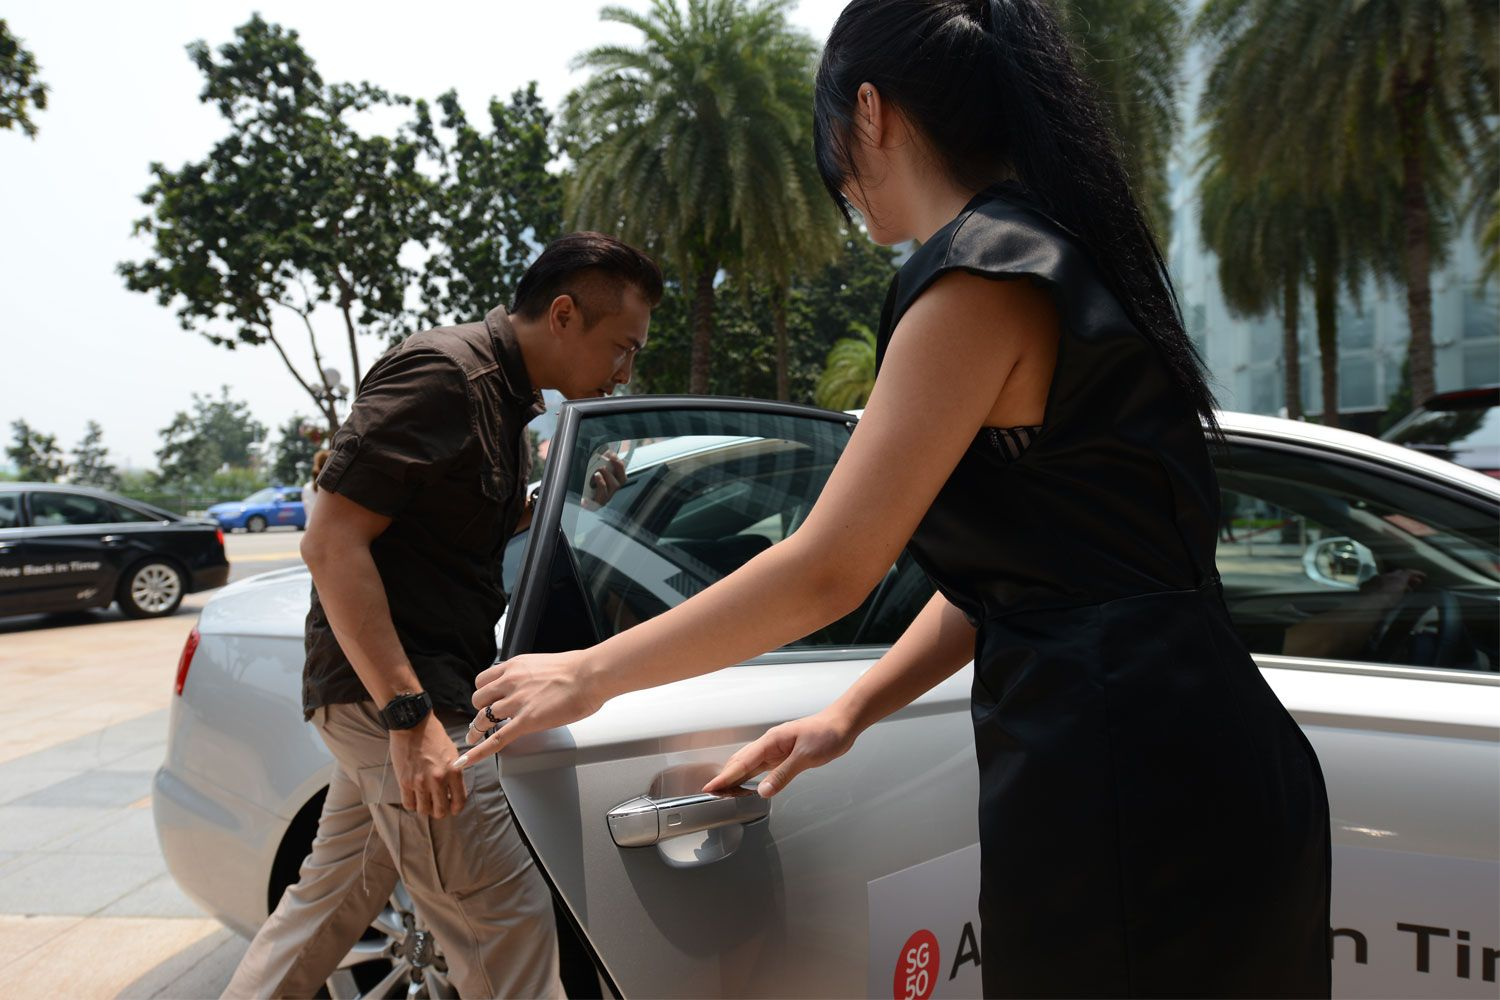 drive by simon tay About peter tay peter tay of peter tay studio is the celebrity interior designer to stars, such as zhang ziyi, wang leehom, stephanie sun and zoe tay.